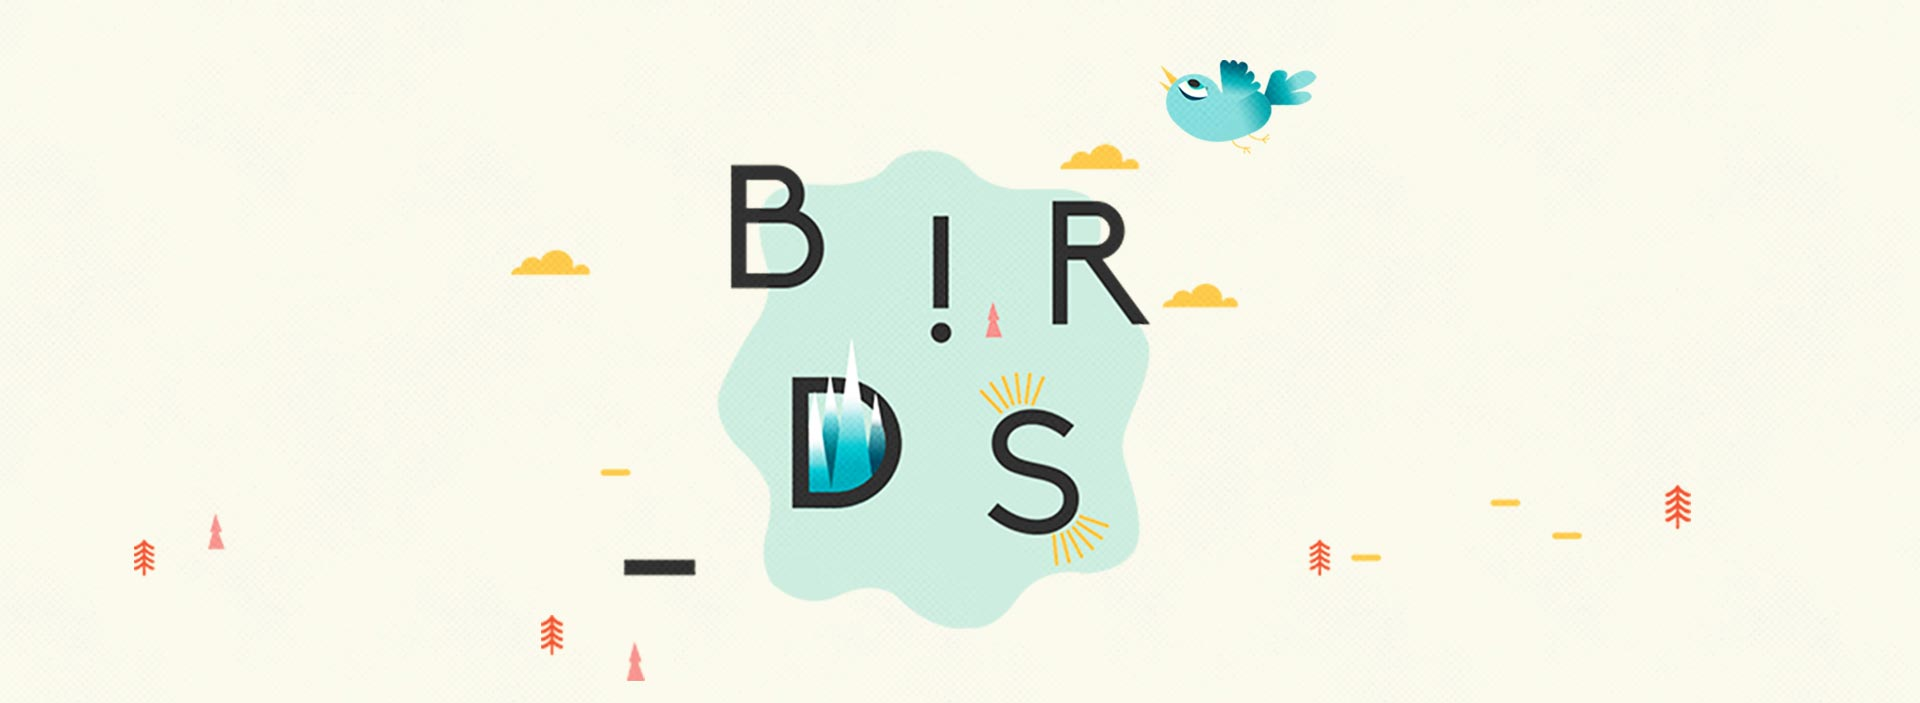 Birds communication Toulouse agence digitale